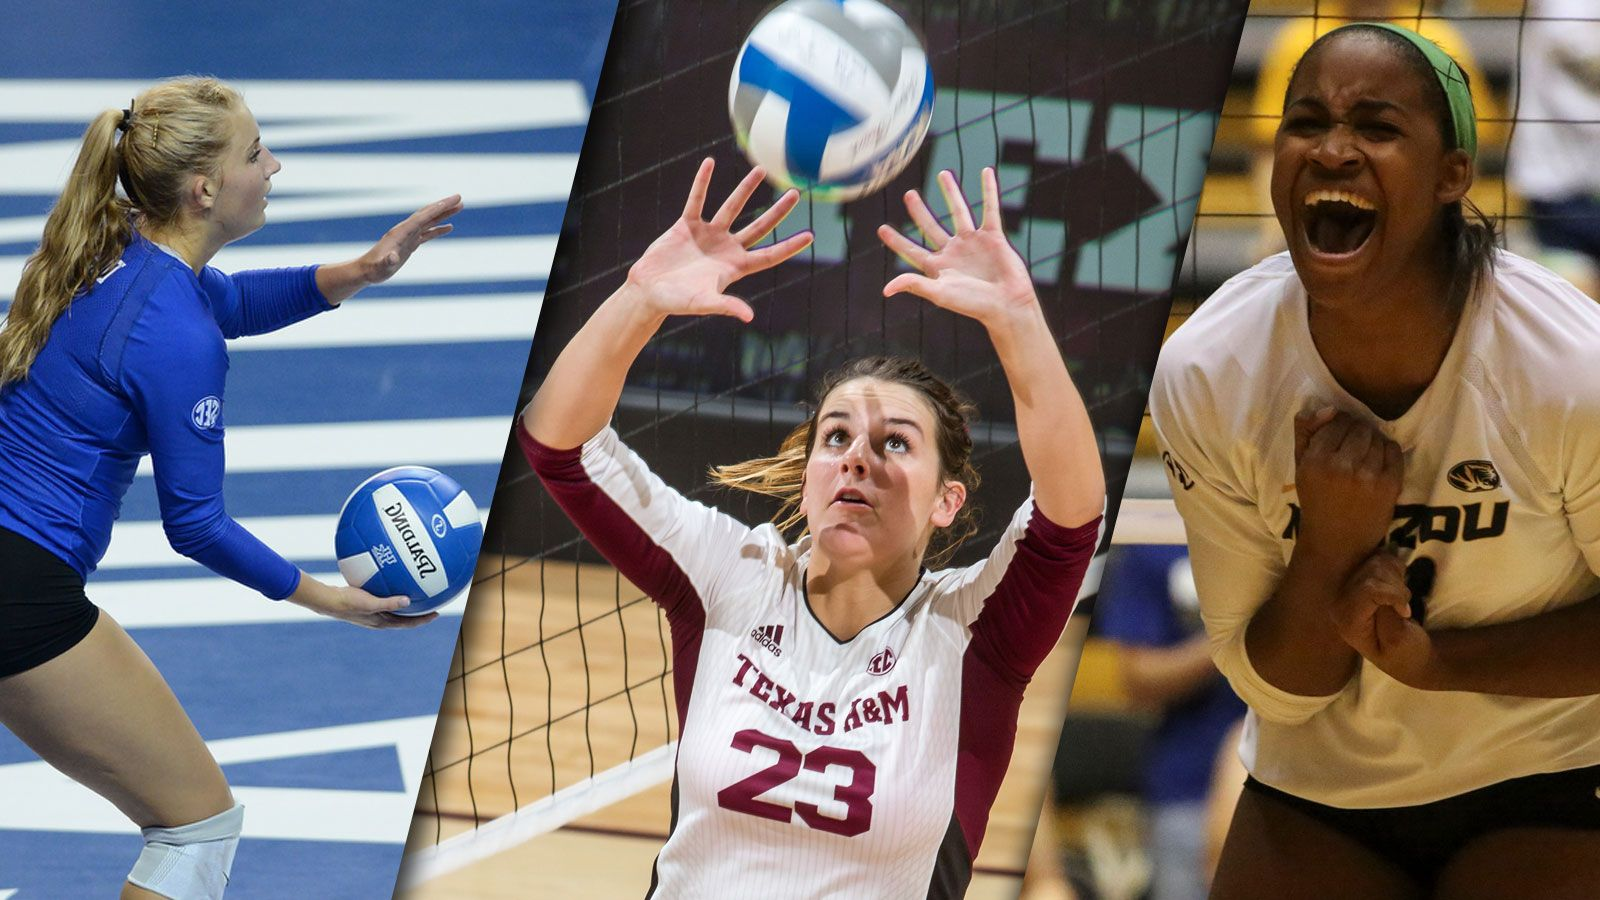 2015 Sec Volleyball Awards Announced